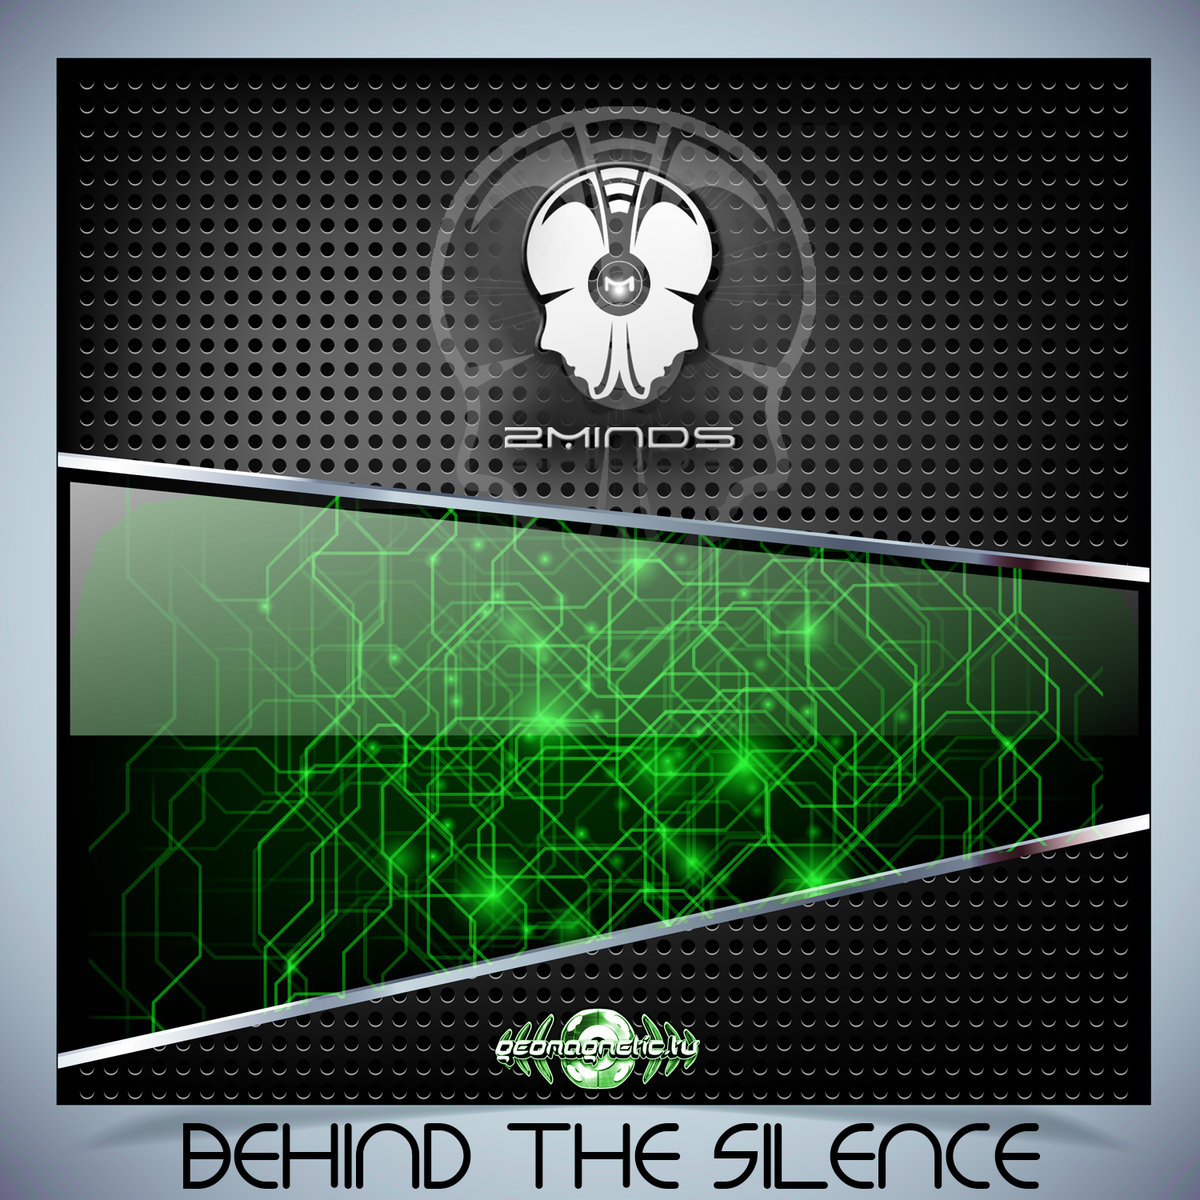 2Minds - Behind the Silence (artwork)